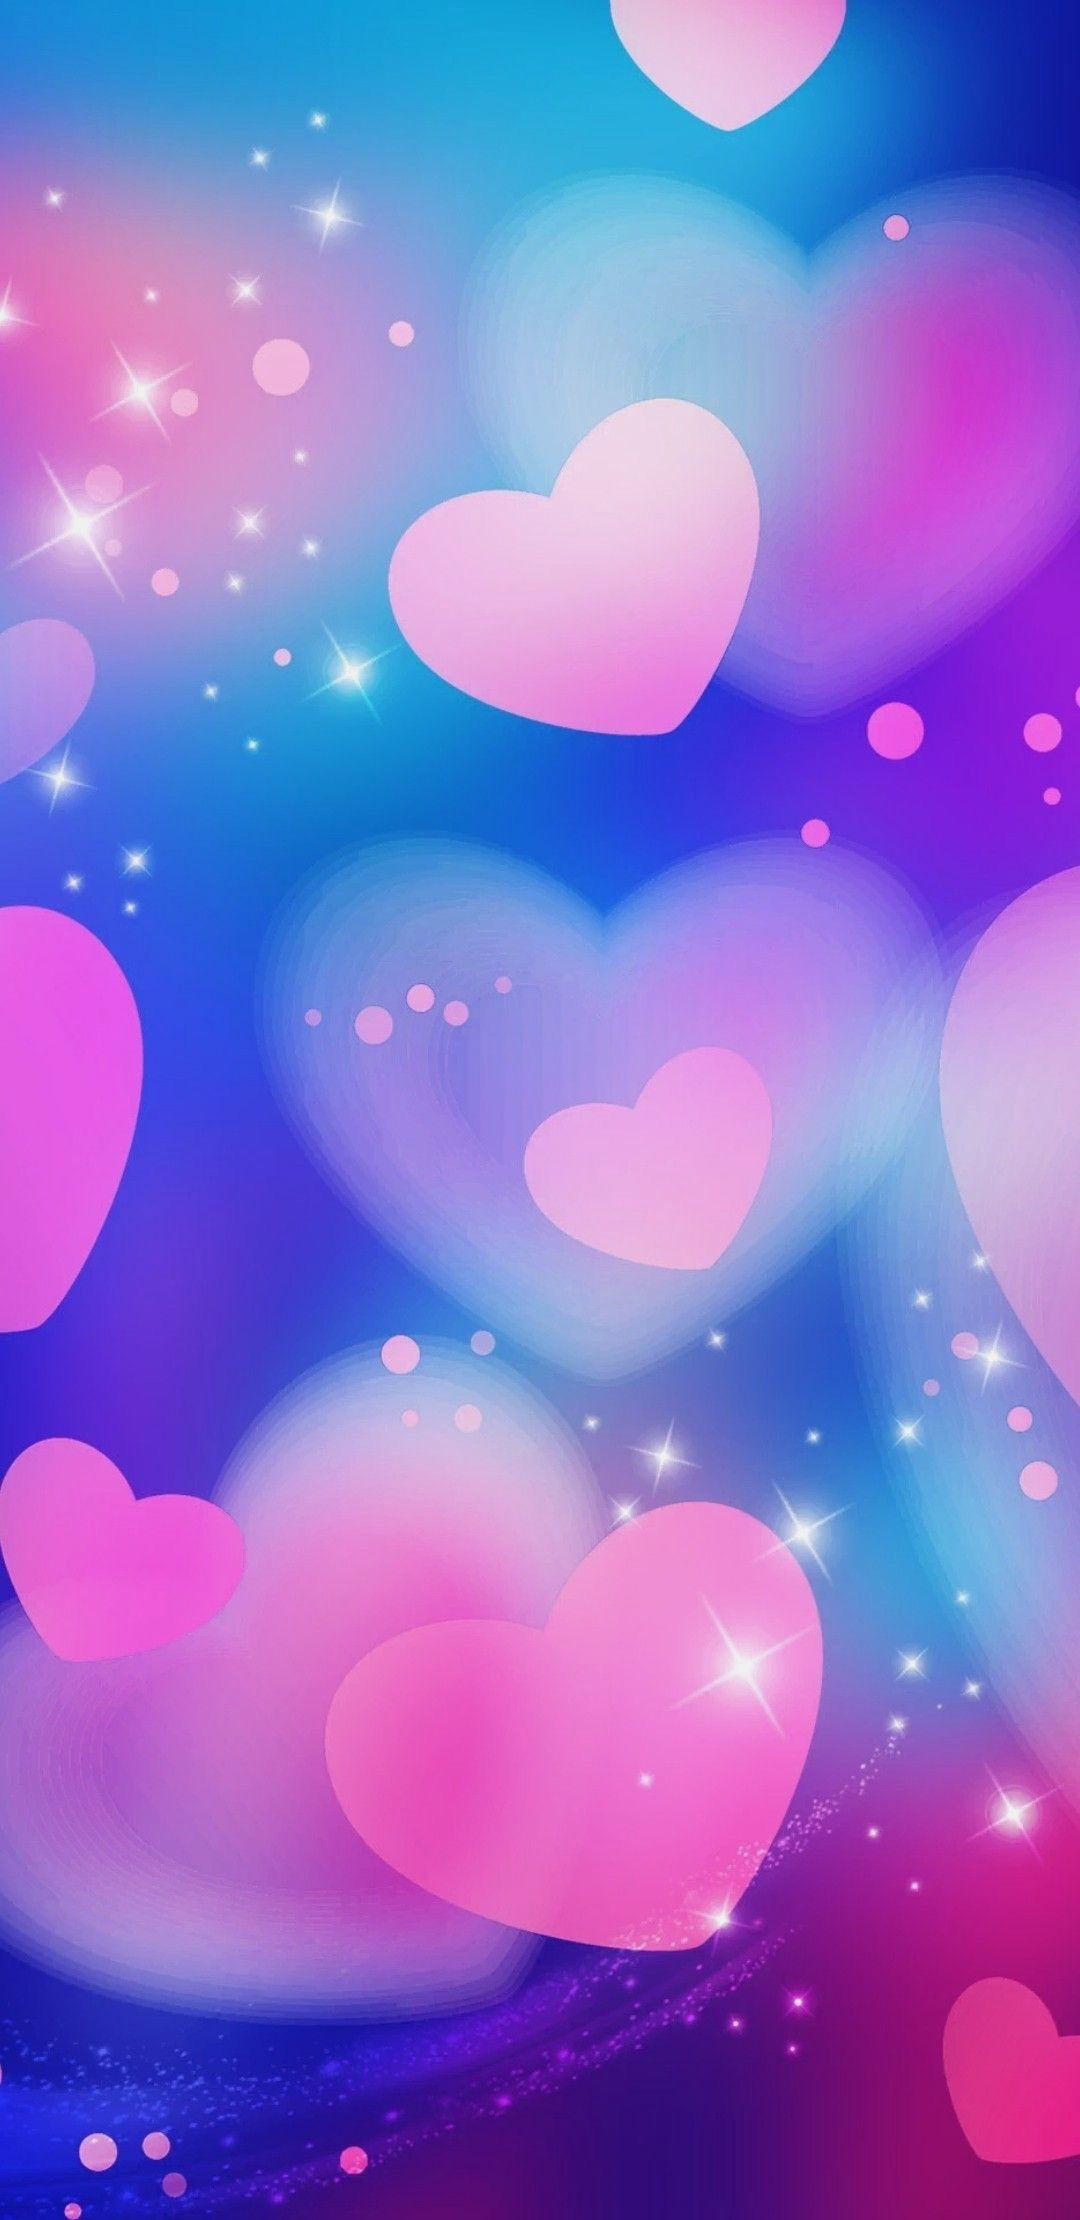 Nerdy Wallpaper Heart Wallpaper Pink Wallpaper Galaxy   Cute 1080x2220